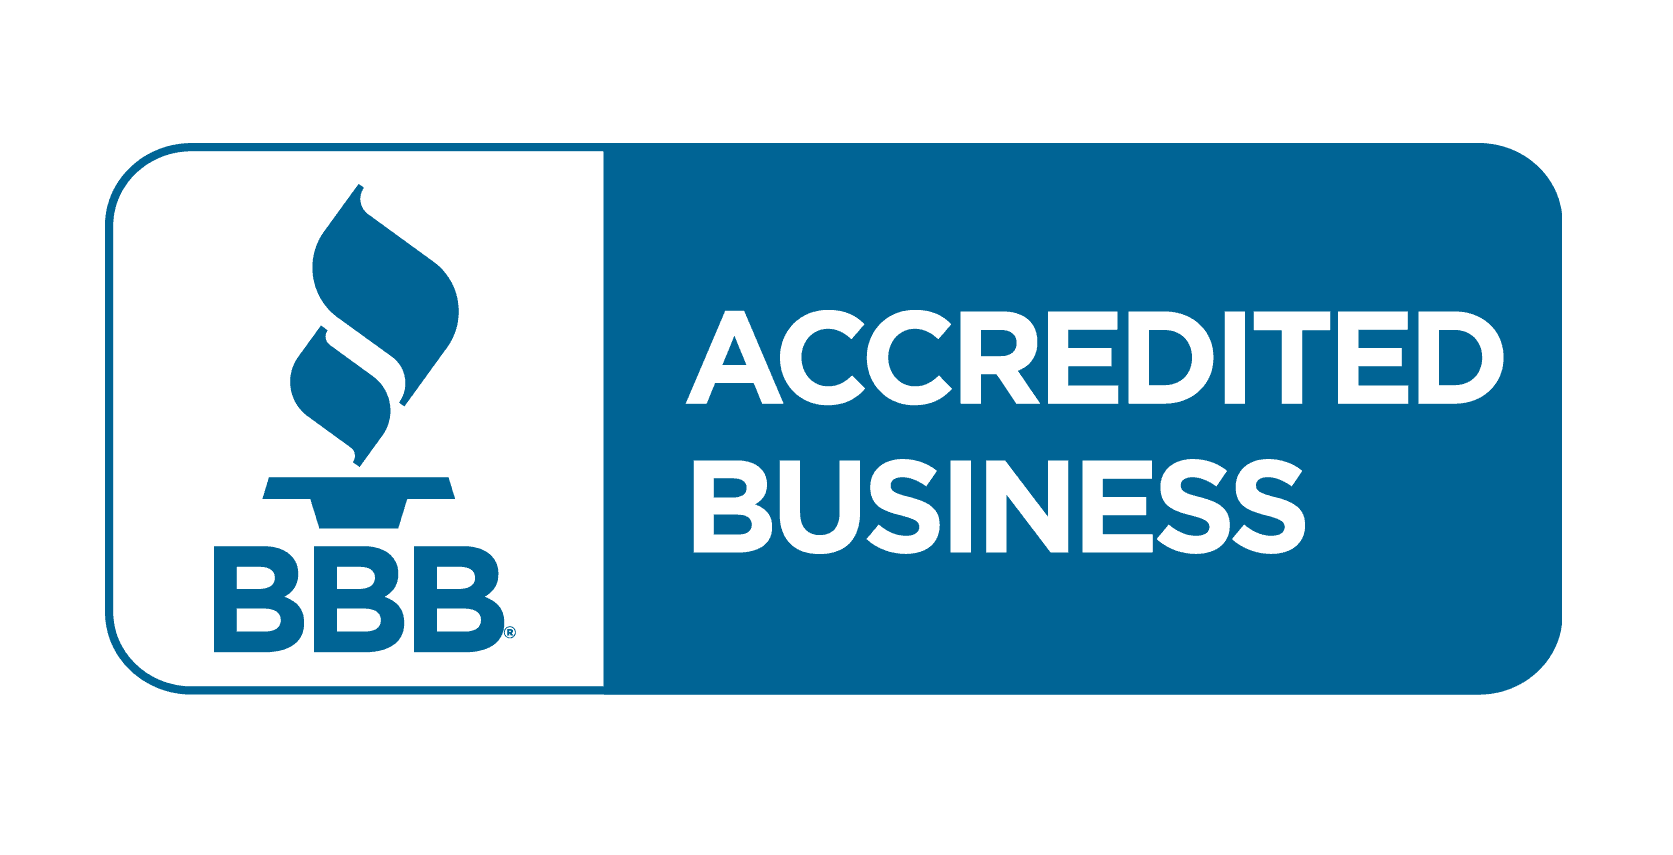 bbb accredited business png logo